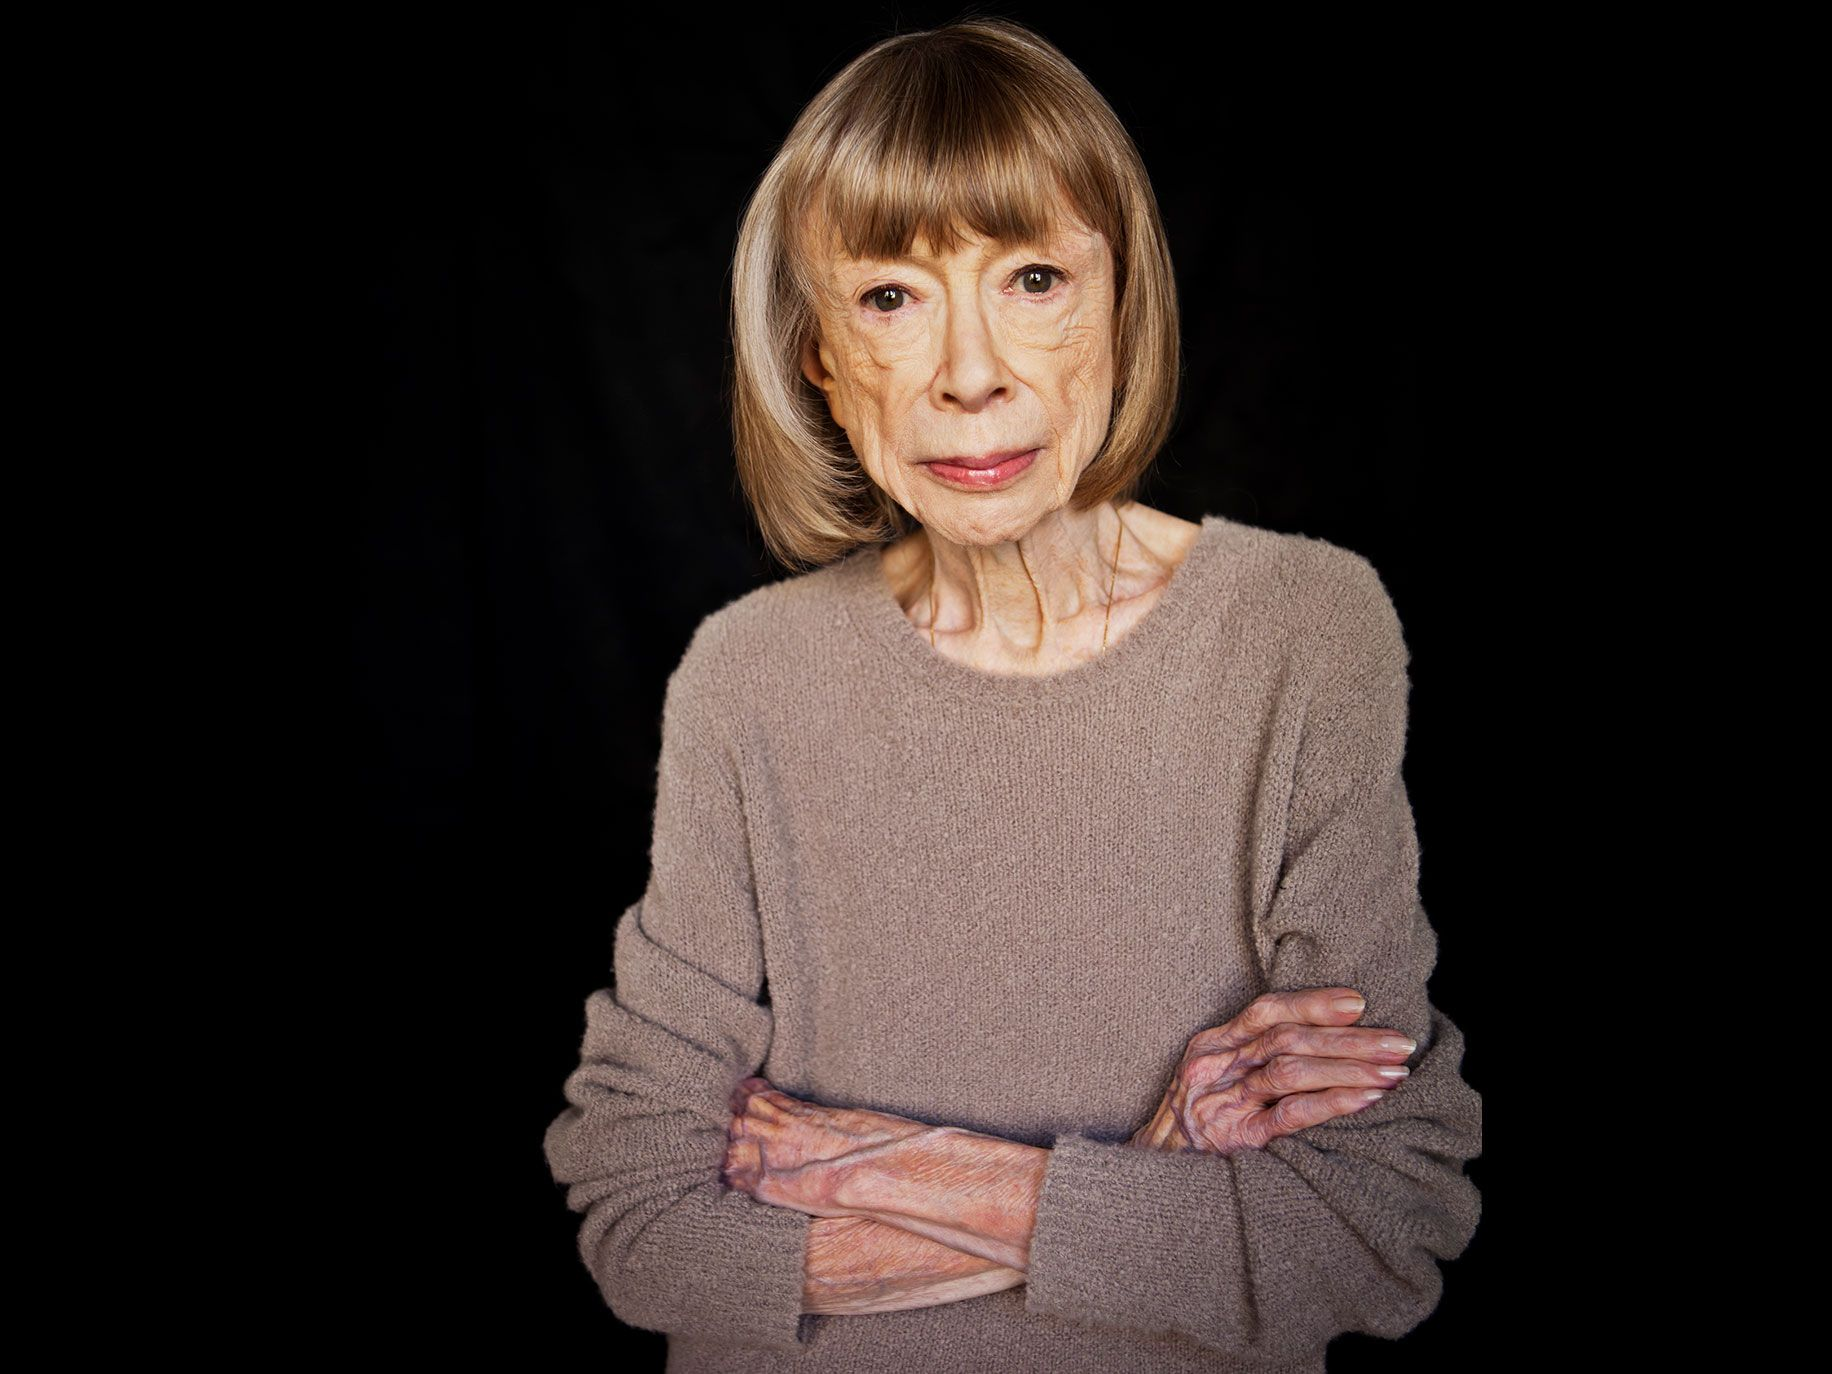 Author Joan Didion has been the recipient of numerous awards, including a National Medal of Arts and Humanities by President Obama, and the PEN Center USA's Lifetime Achievement Award.